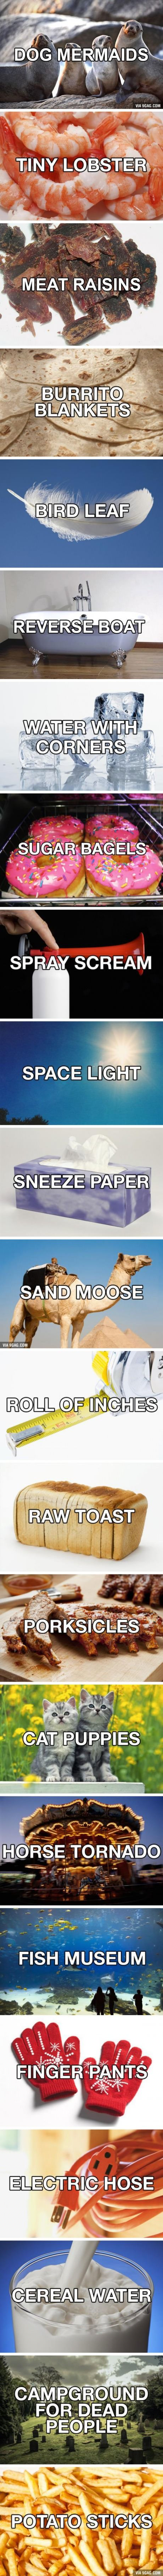 26 new and improved names for everyday things